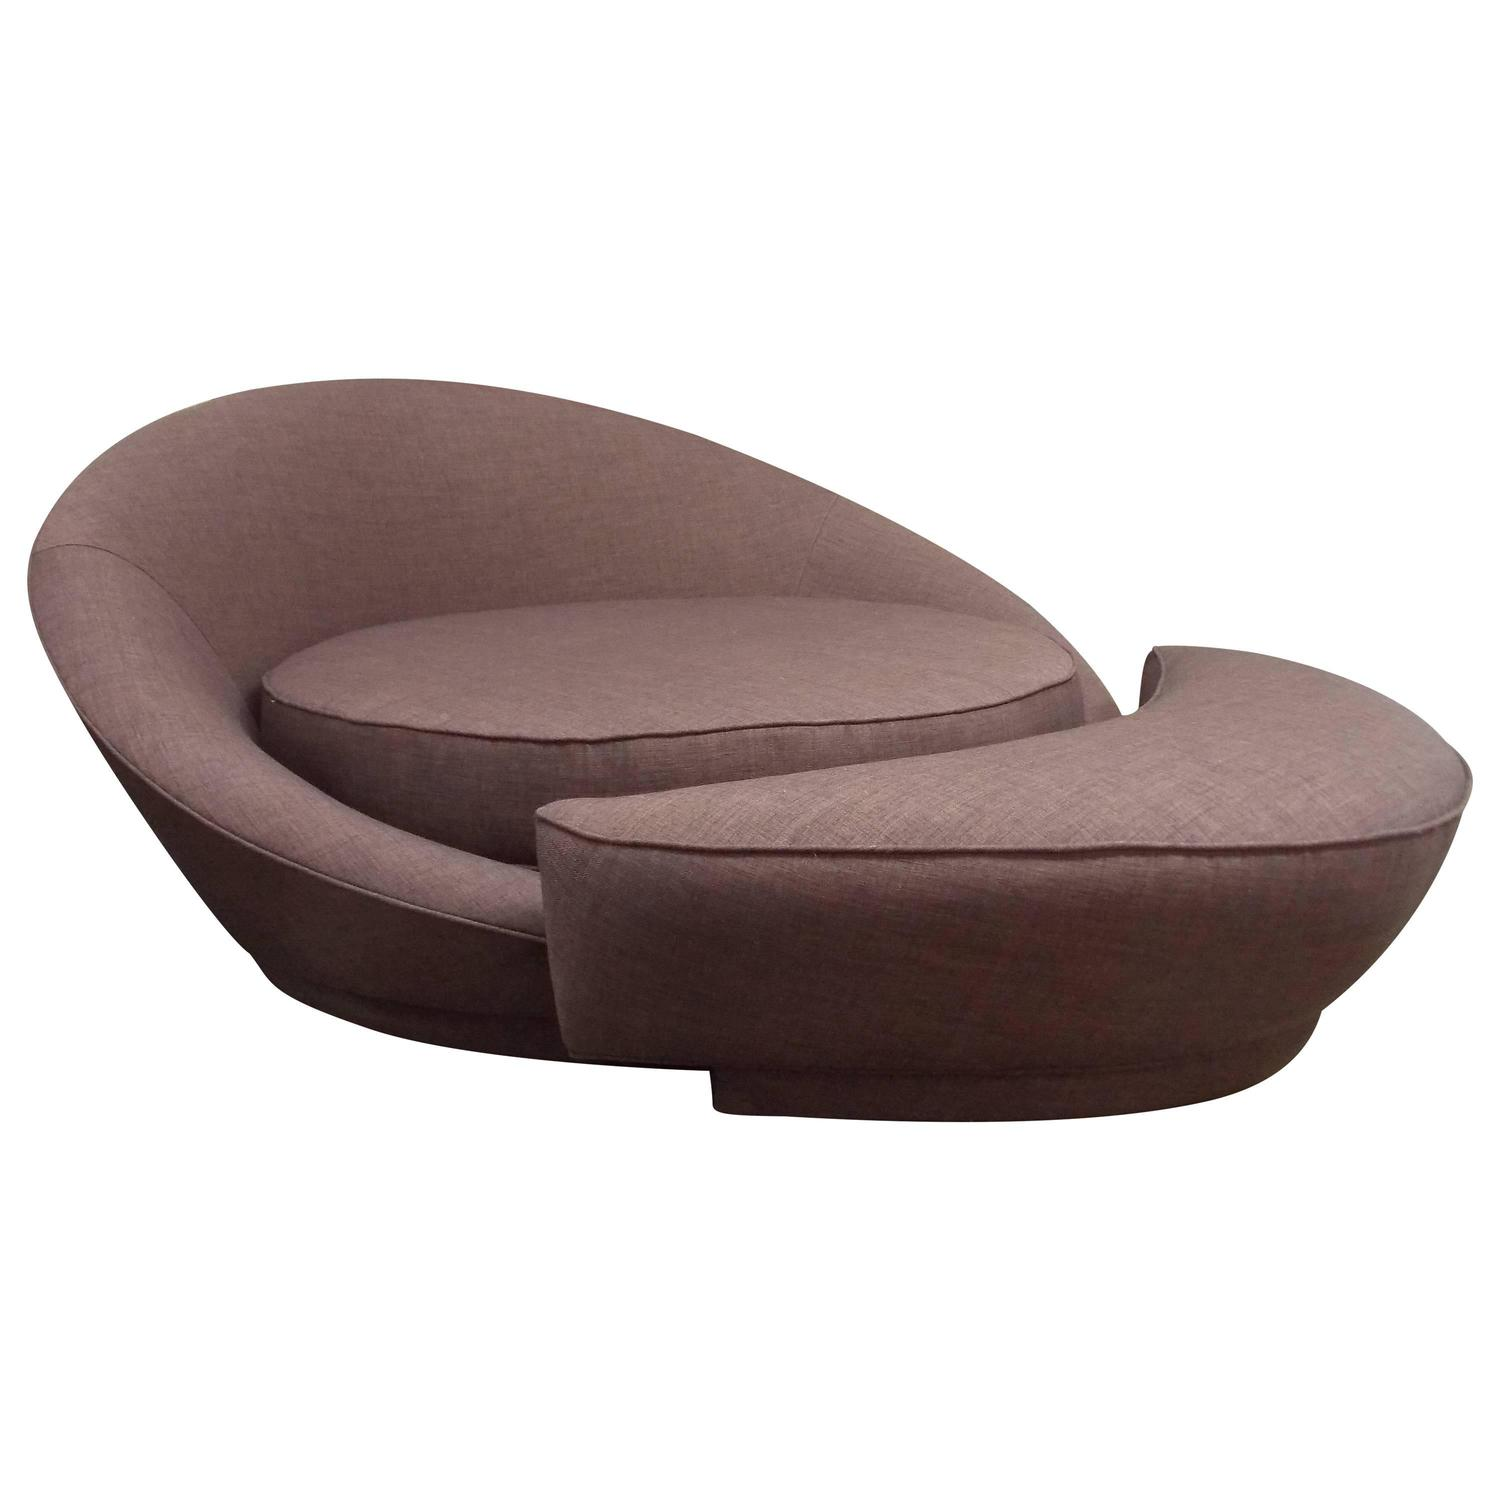 milo baughman round loveseat or lounge chair with ottoman at stdibs -